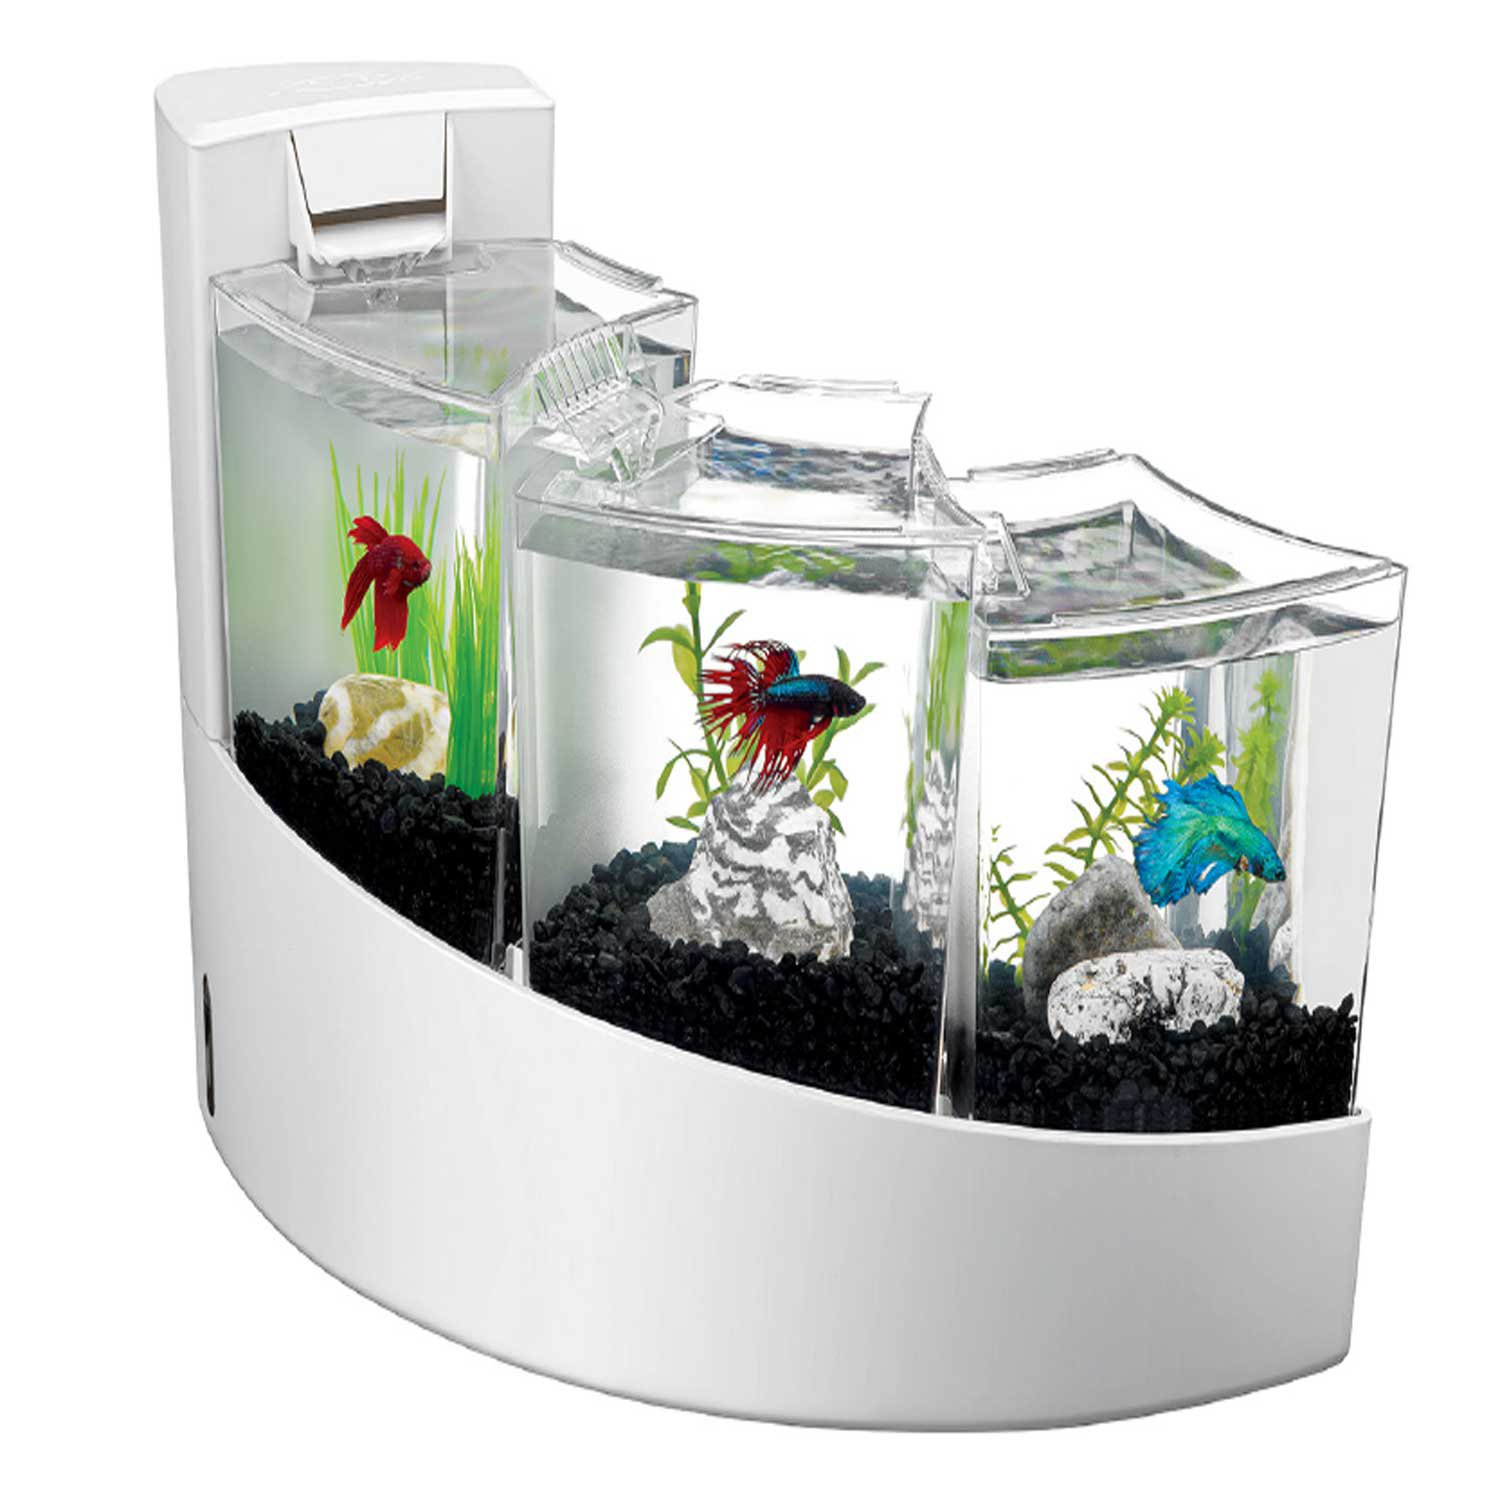 Office Desk Fish Tank Fluval Spec Aquarium T Whitehousevipcom